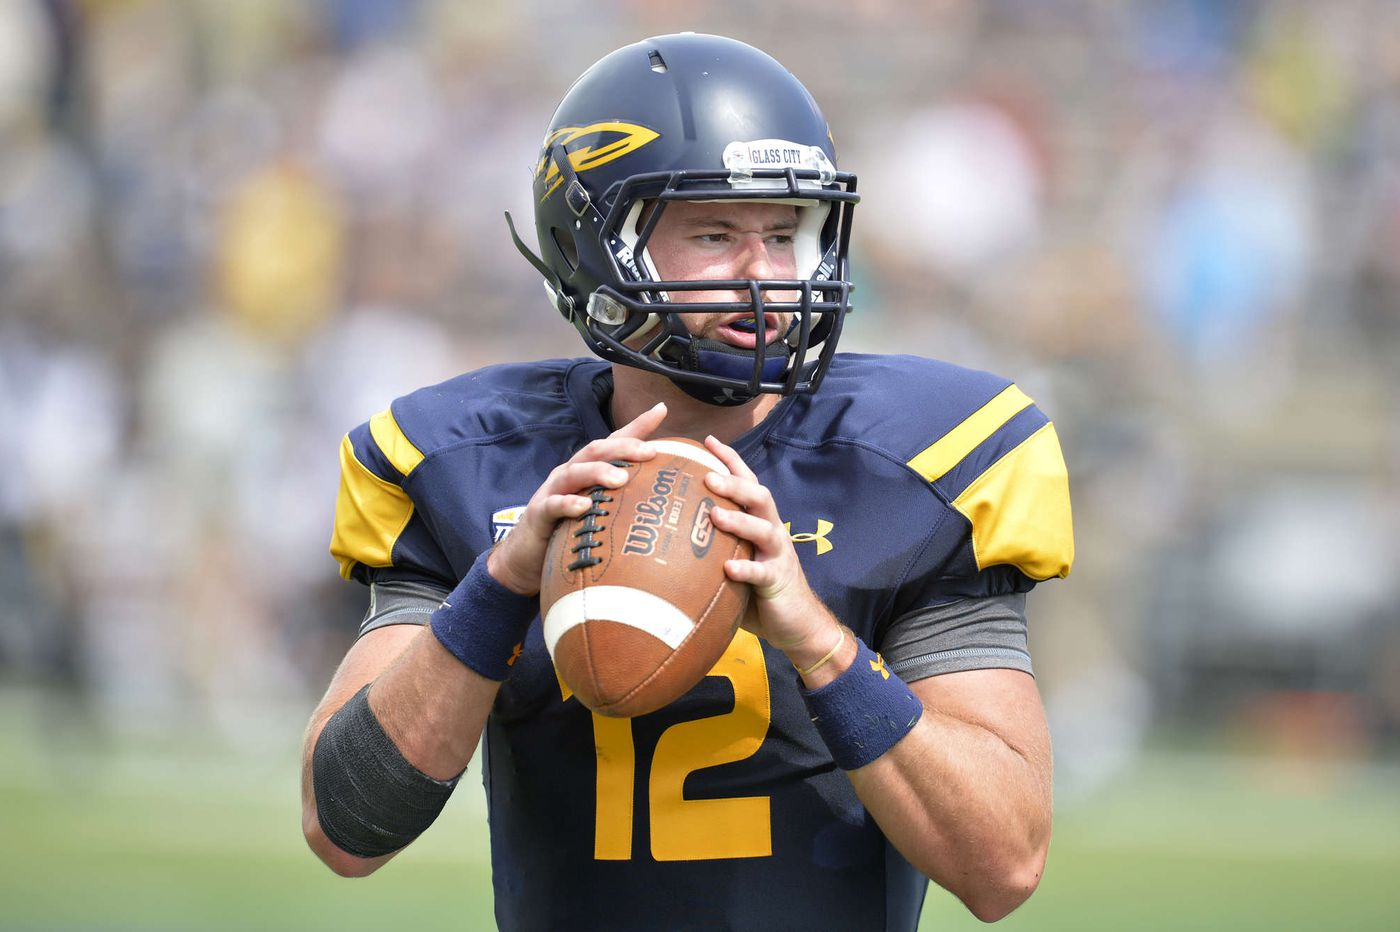 Toledo quarterback Ely endured a difficult path